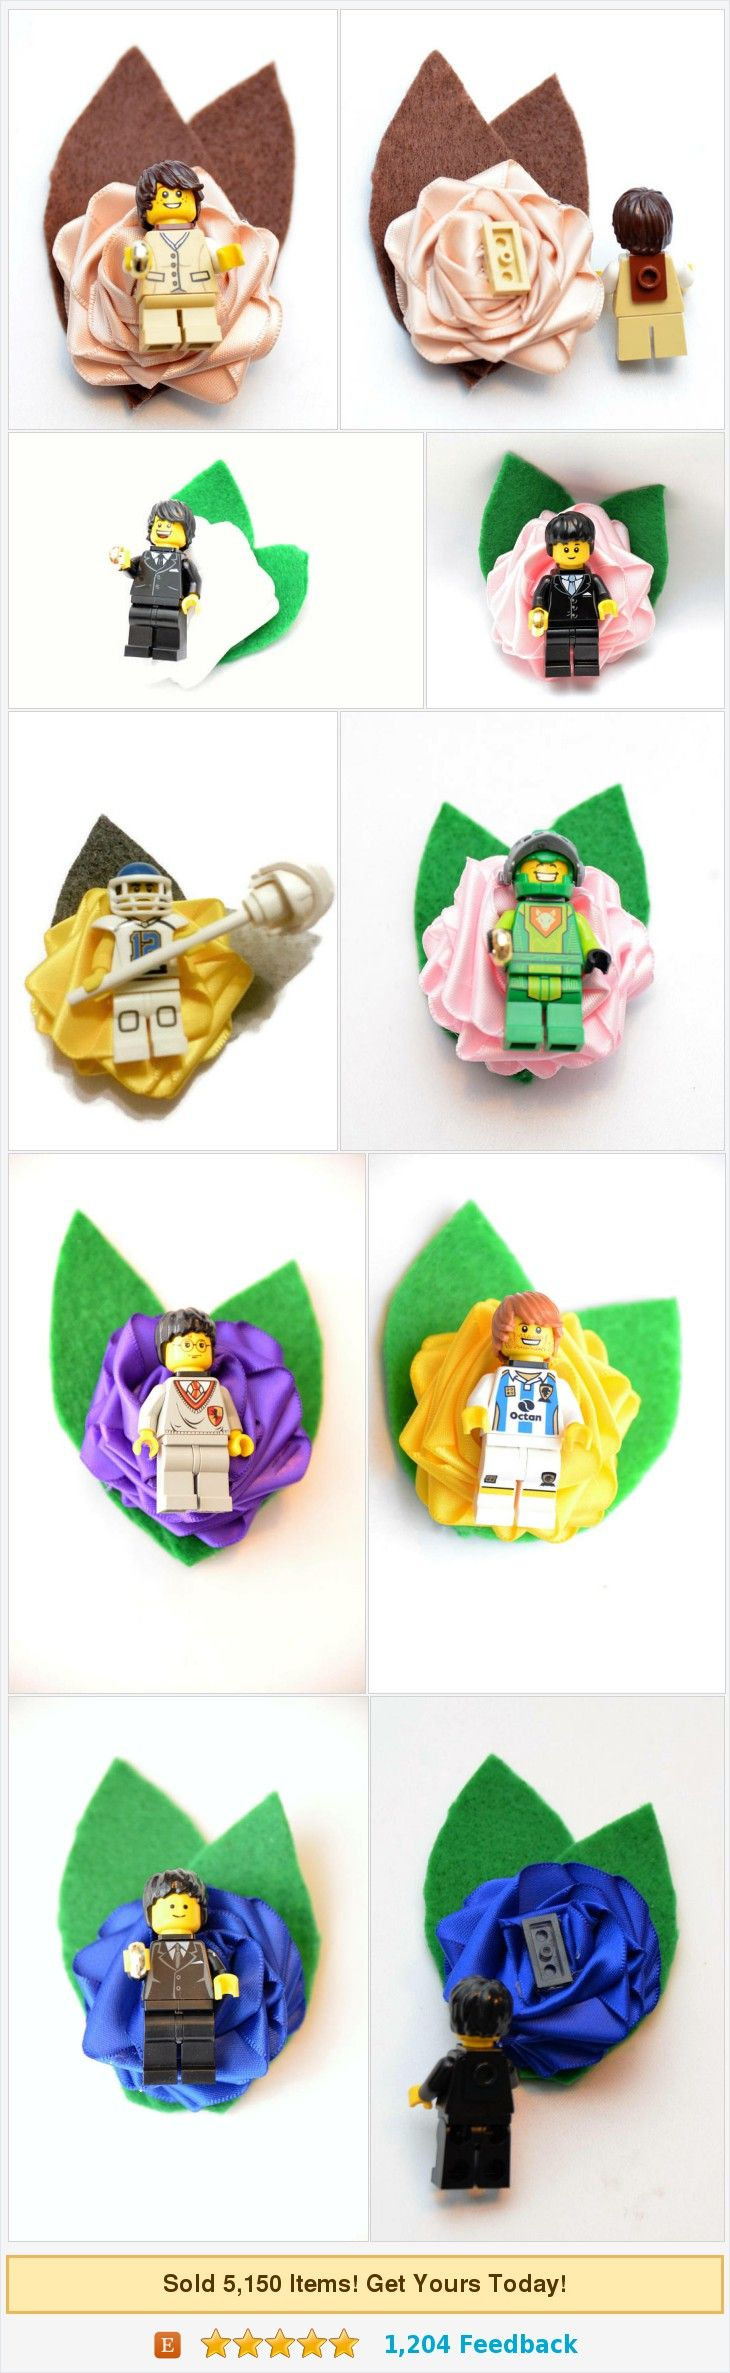 Custom Wedding Geek Nerd Brick Style Boutonniere ~ Pick a Hero Or Custom Minifig ~ Comic Or Sci Fi Style ~ Customize Pick your Hero https://www.etsy.com/DivinityBraid/listing/539636547/custom-wedding-geek-nerd-brick-style?ref=shop_home_active_4